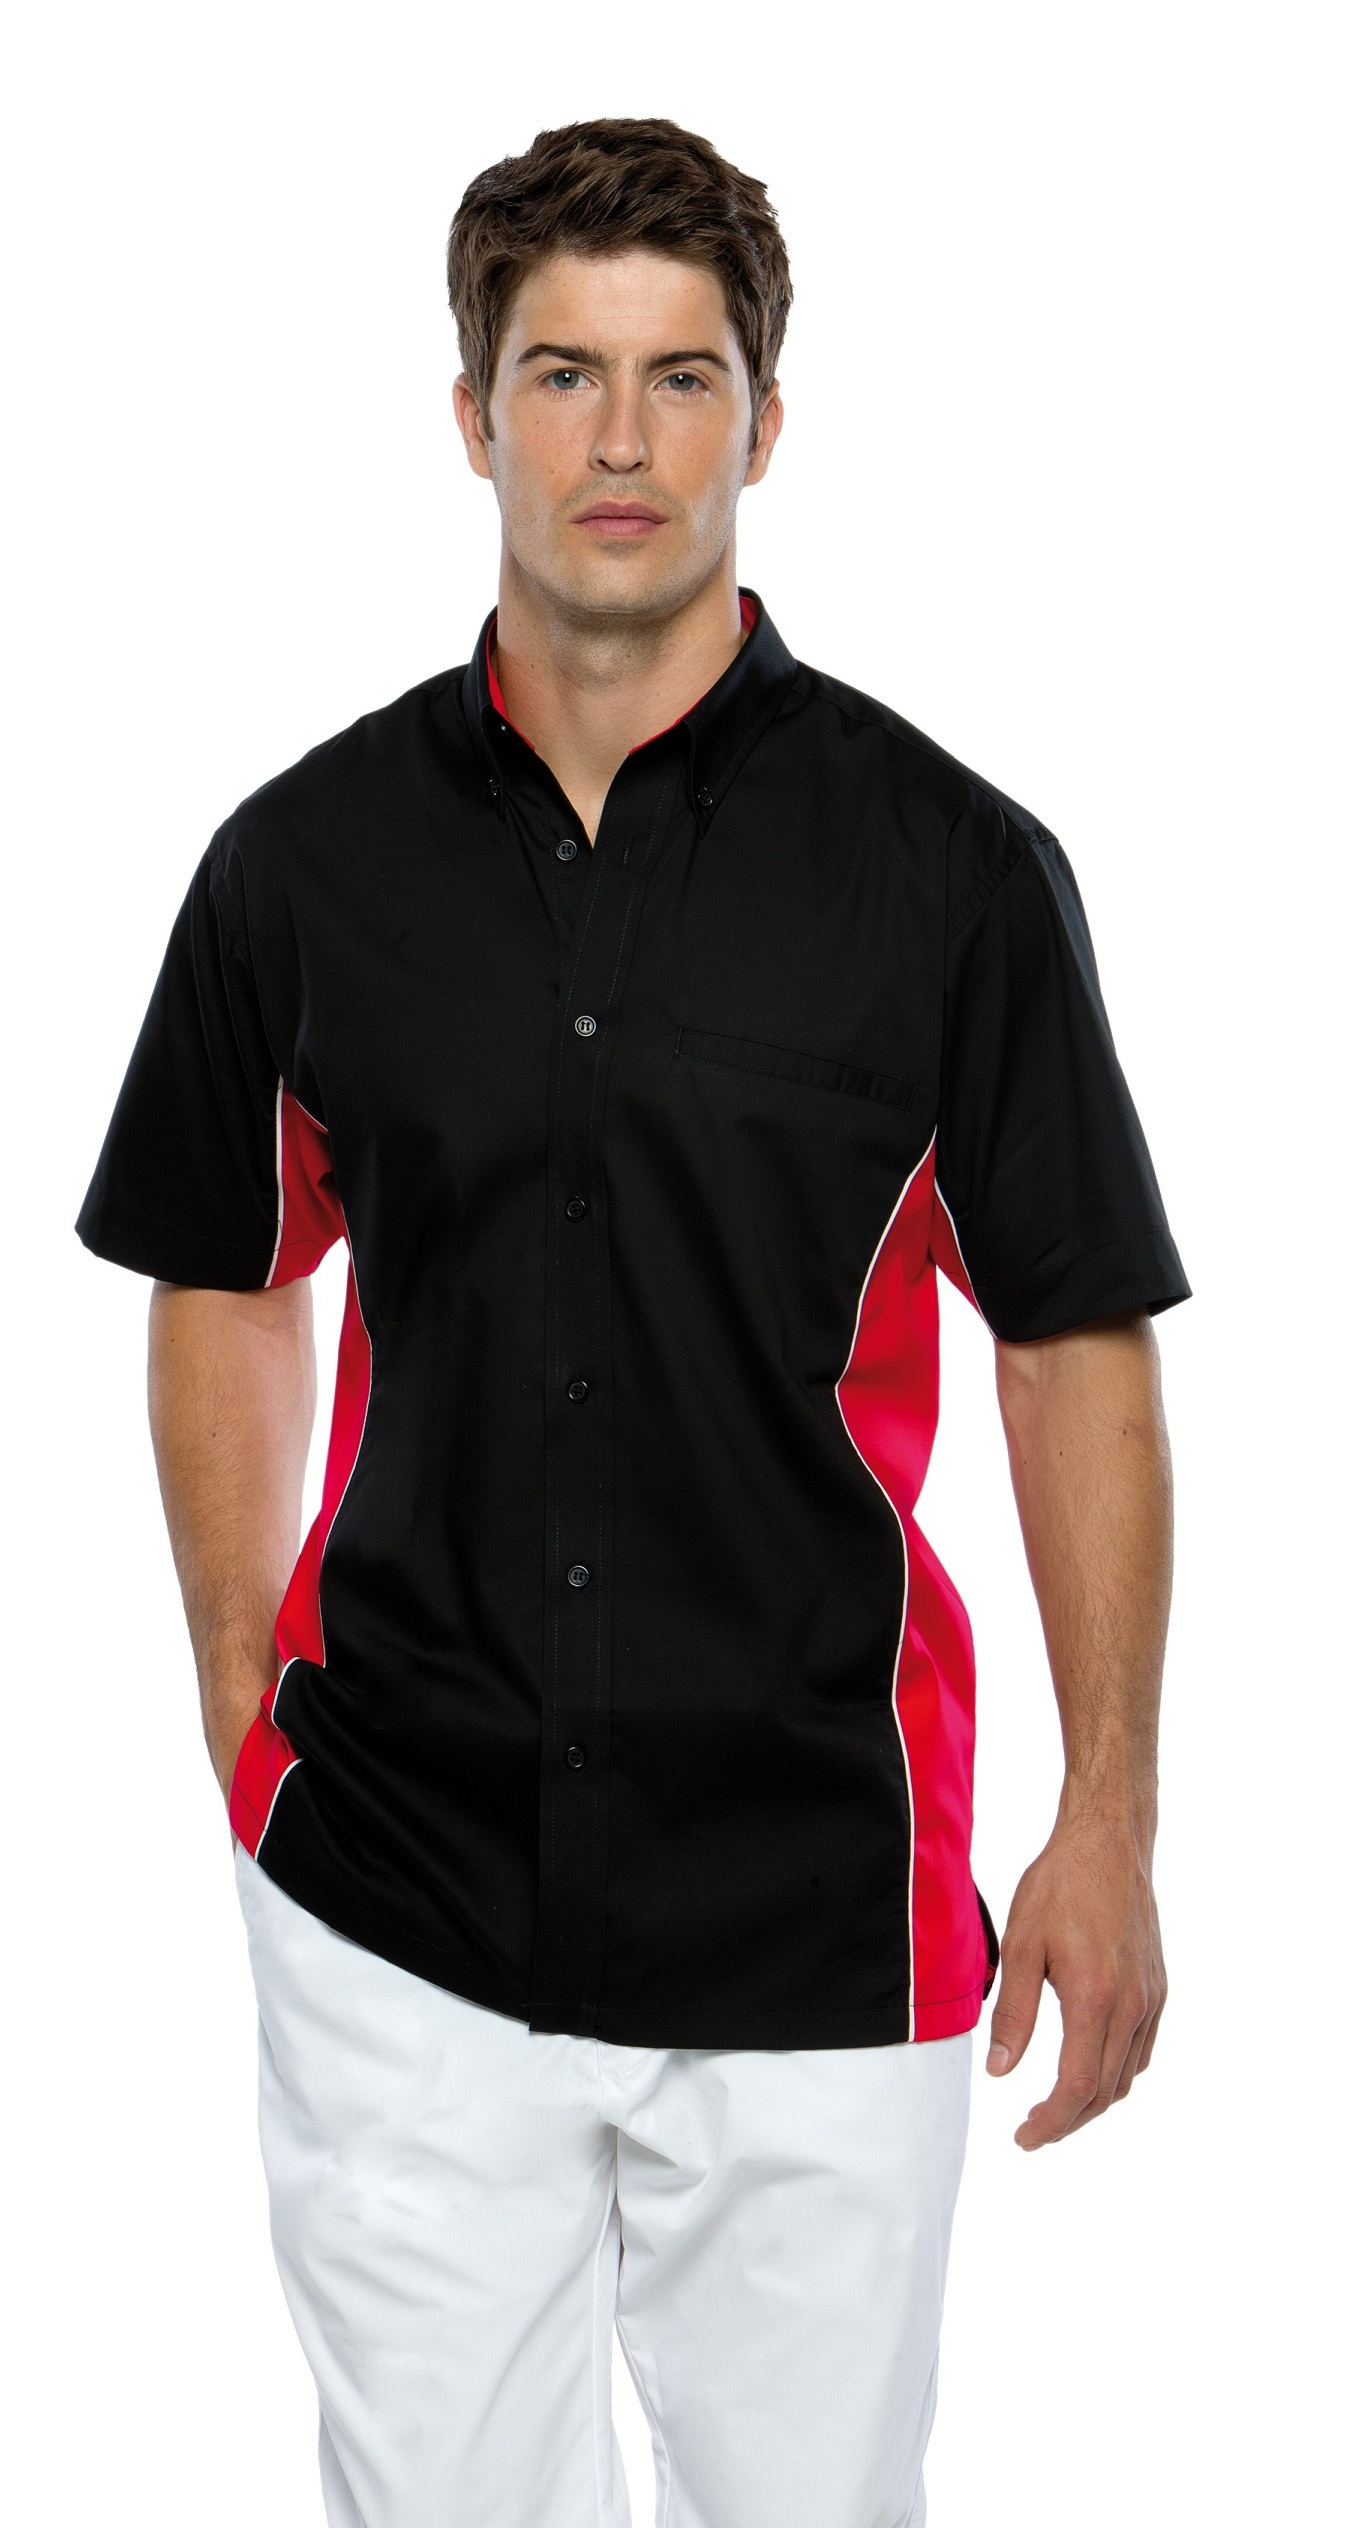 KK185 Kustom Kit Sportman Shirt Short Sleeve